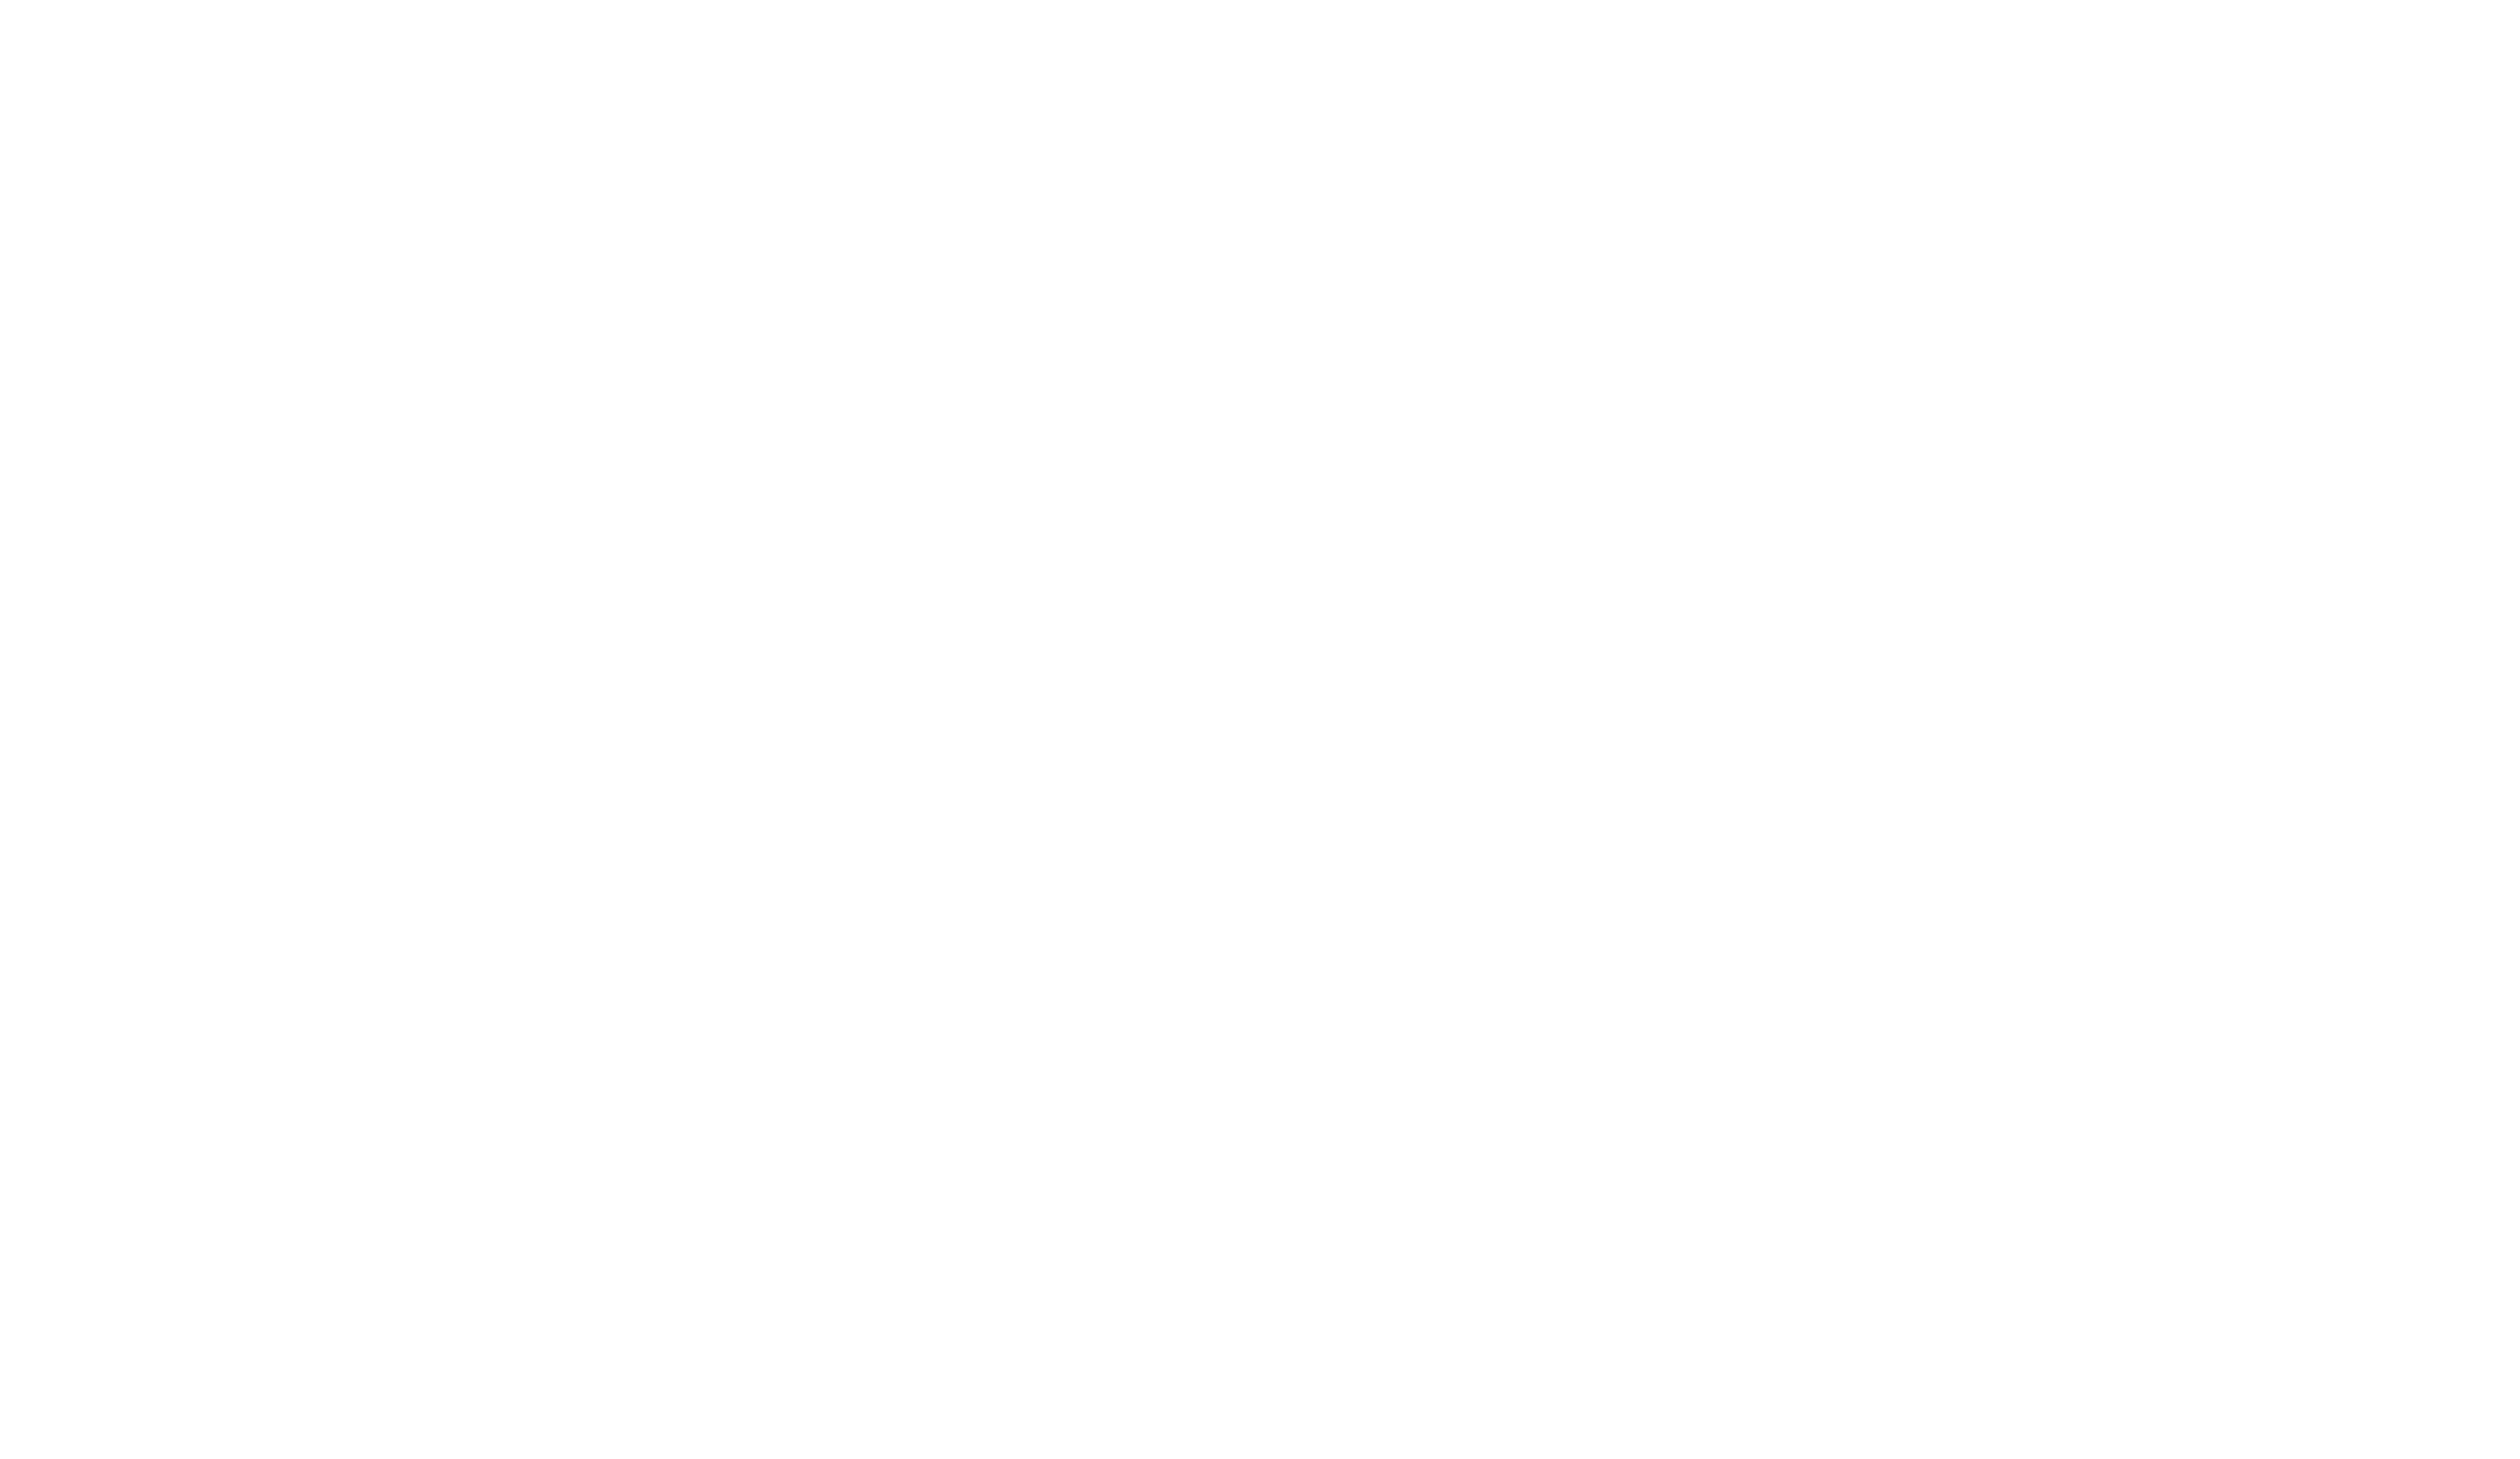 Cafe de lavenue